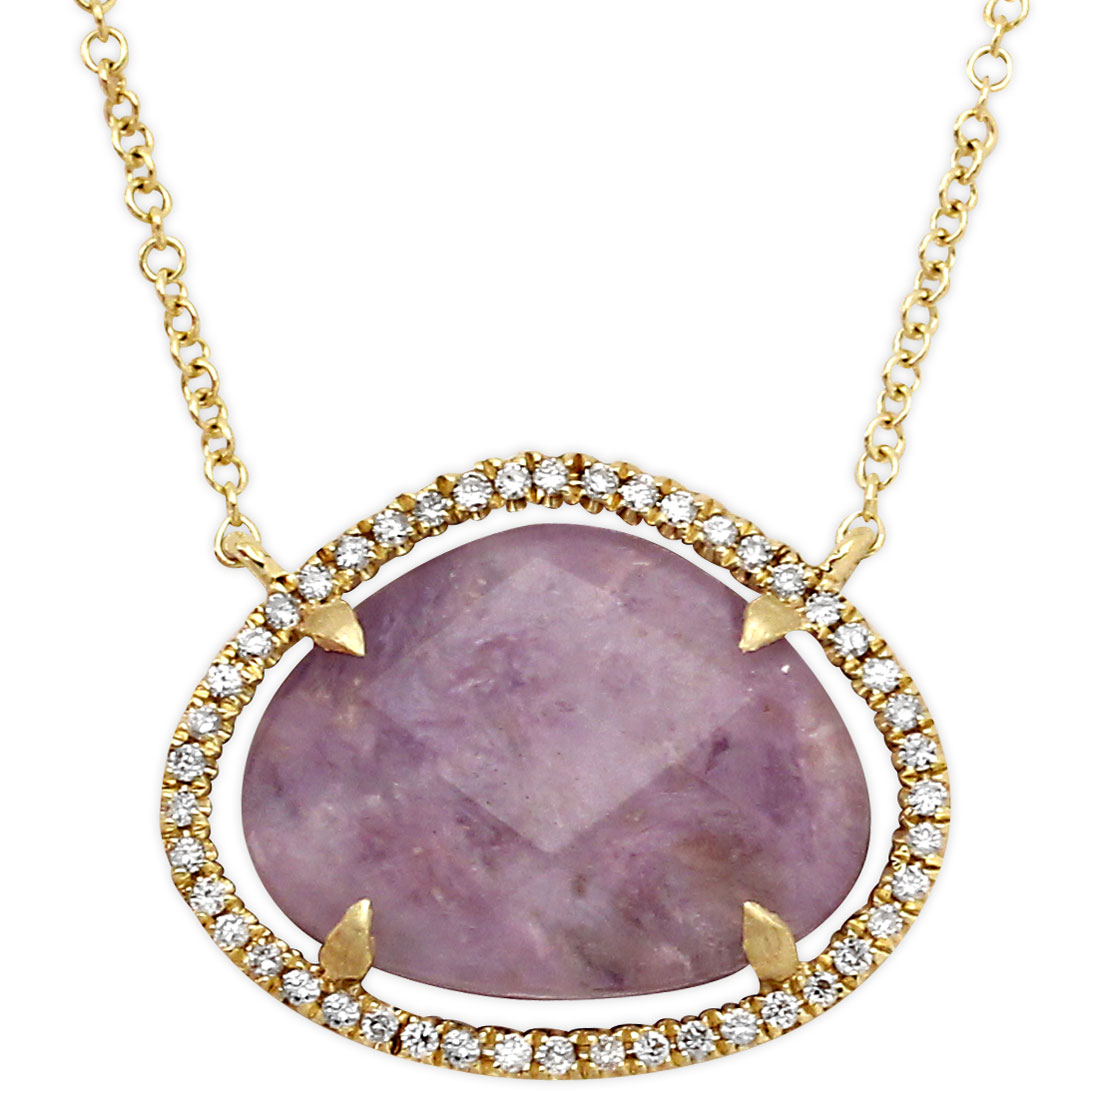 342301-Charoite and Diamond Necklace